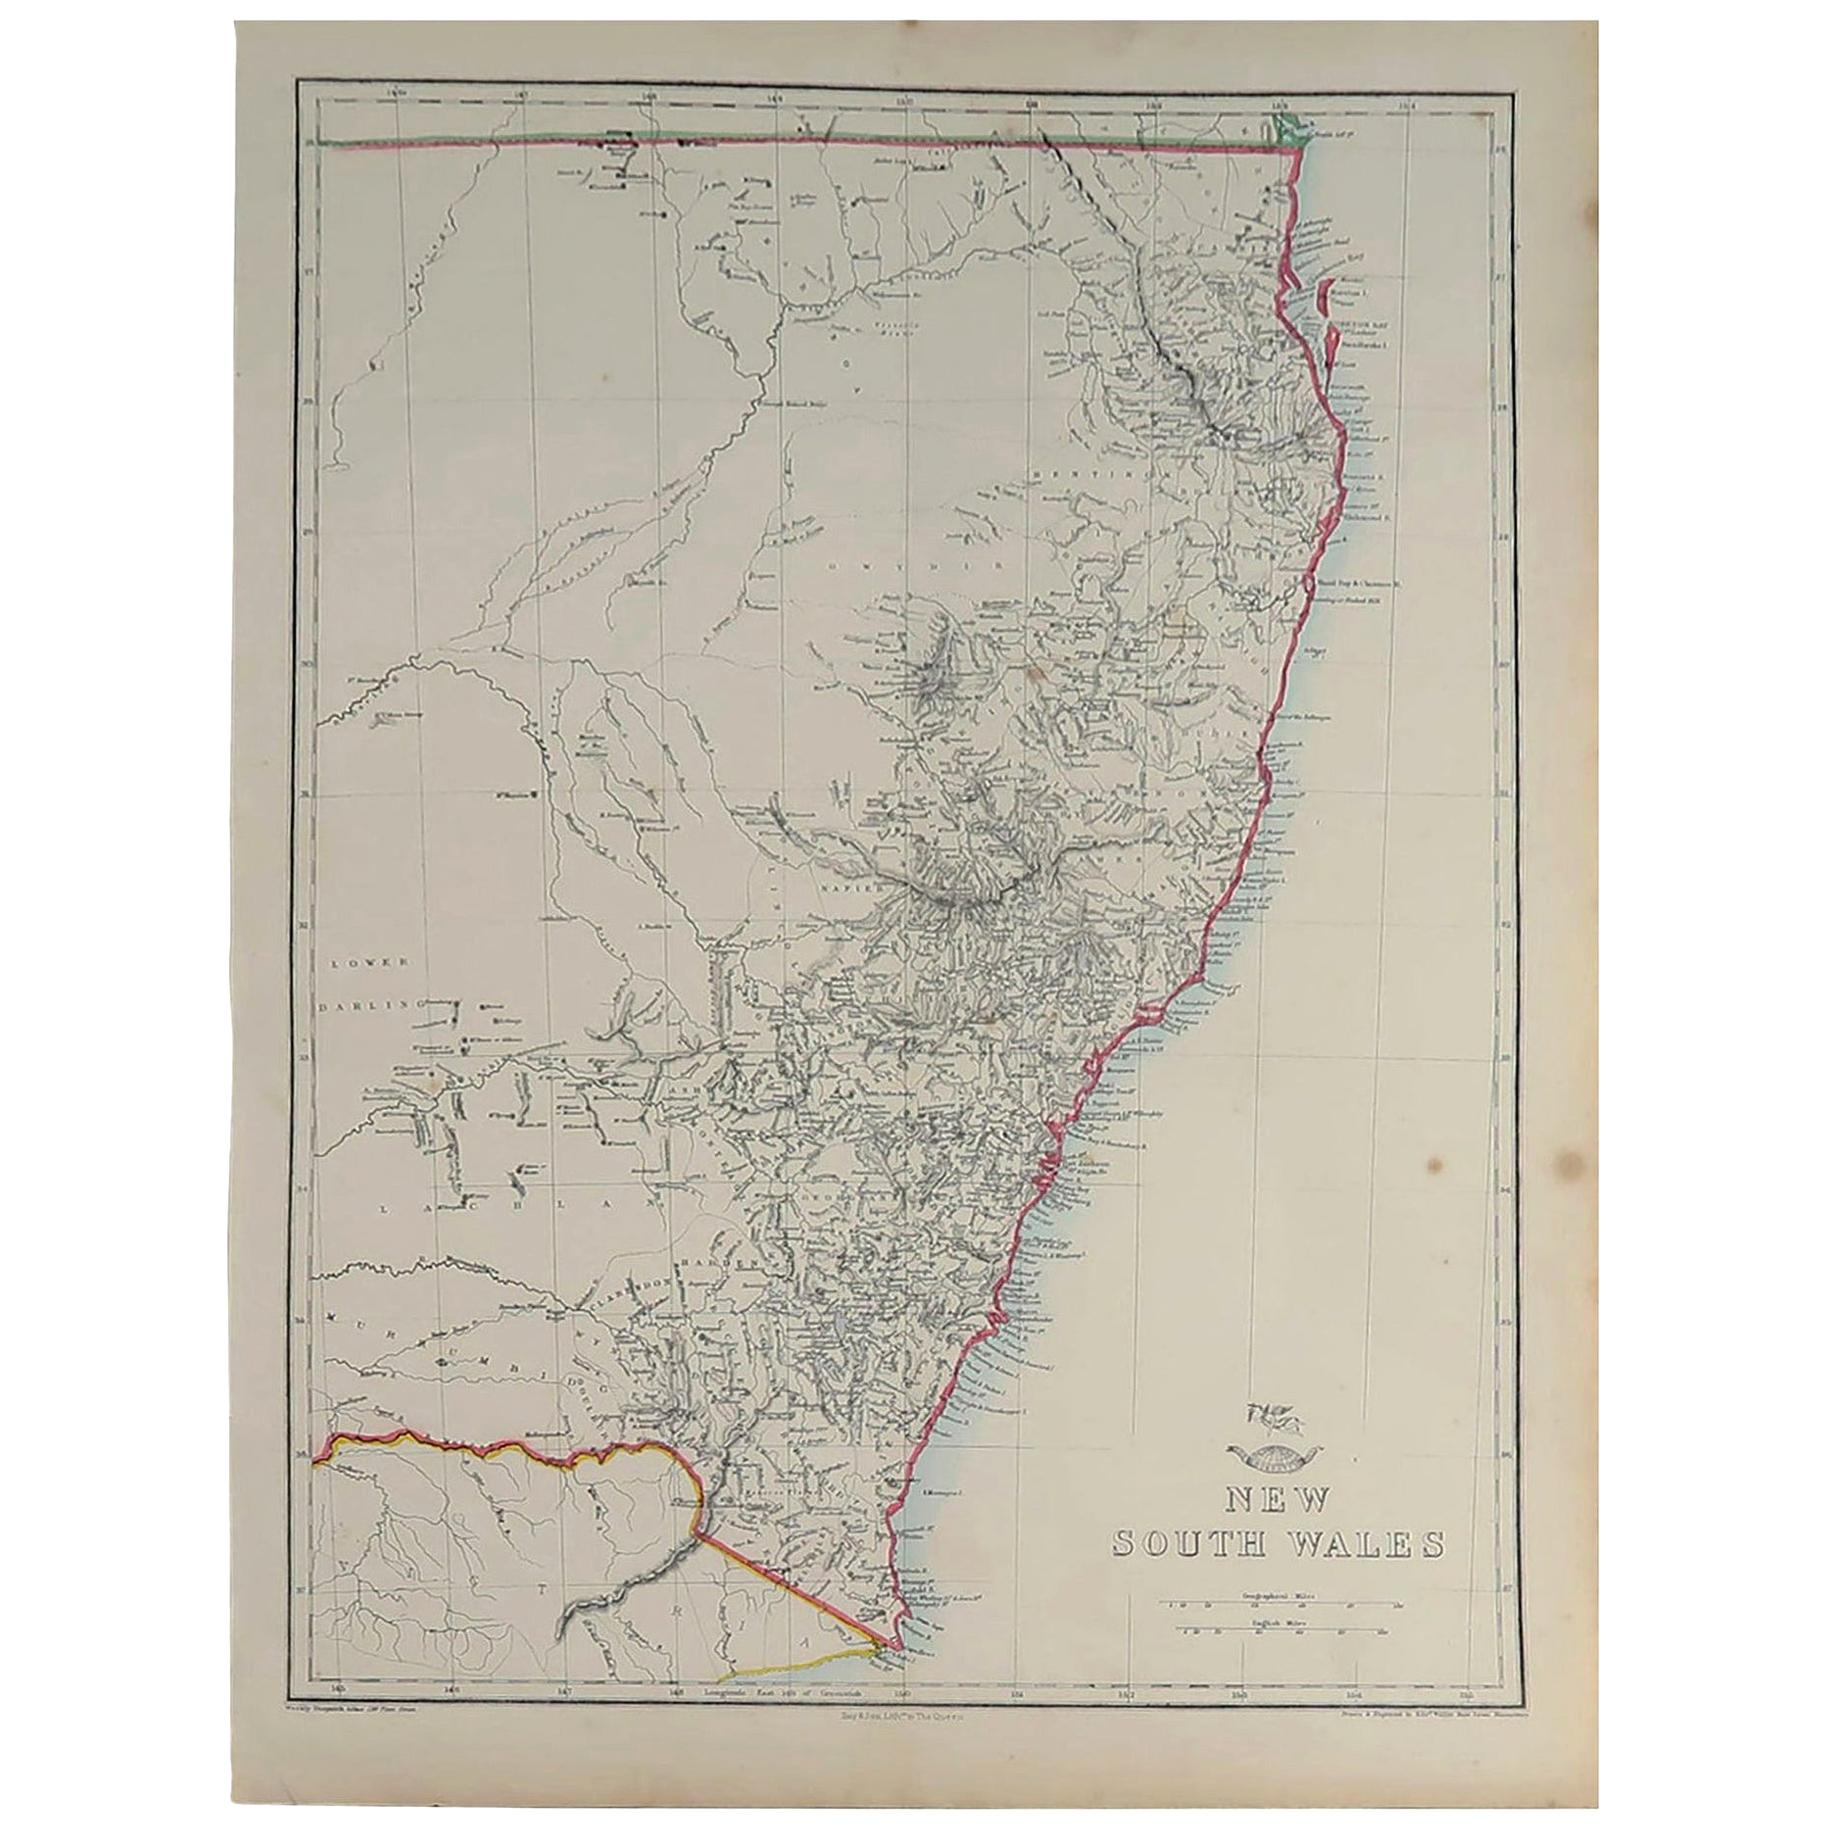 Large Original Antique Map of New South Wales, Australia, 1861